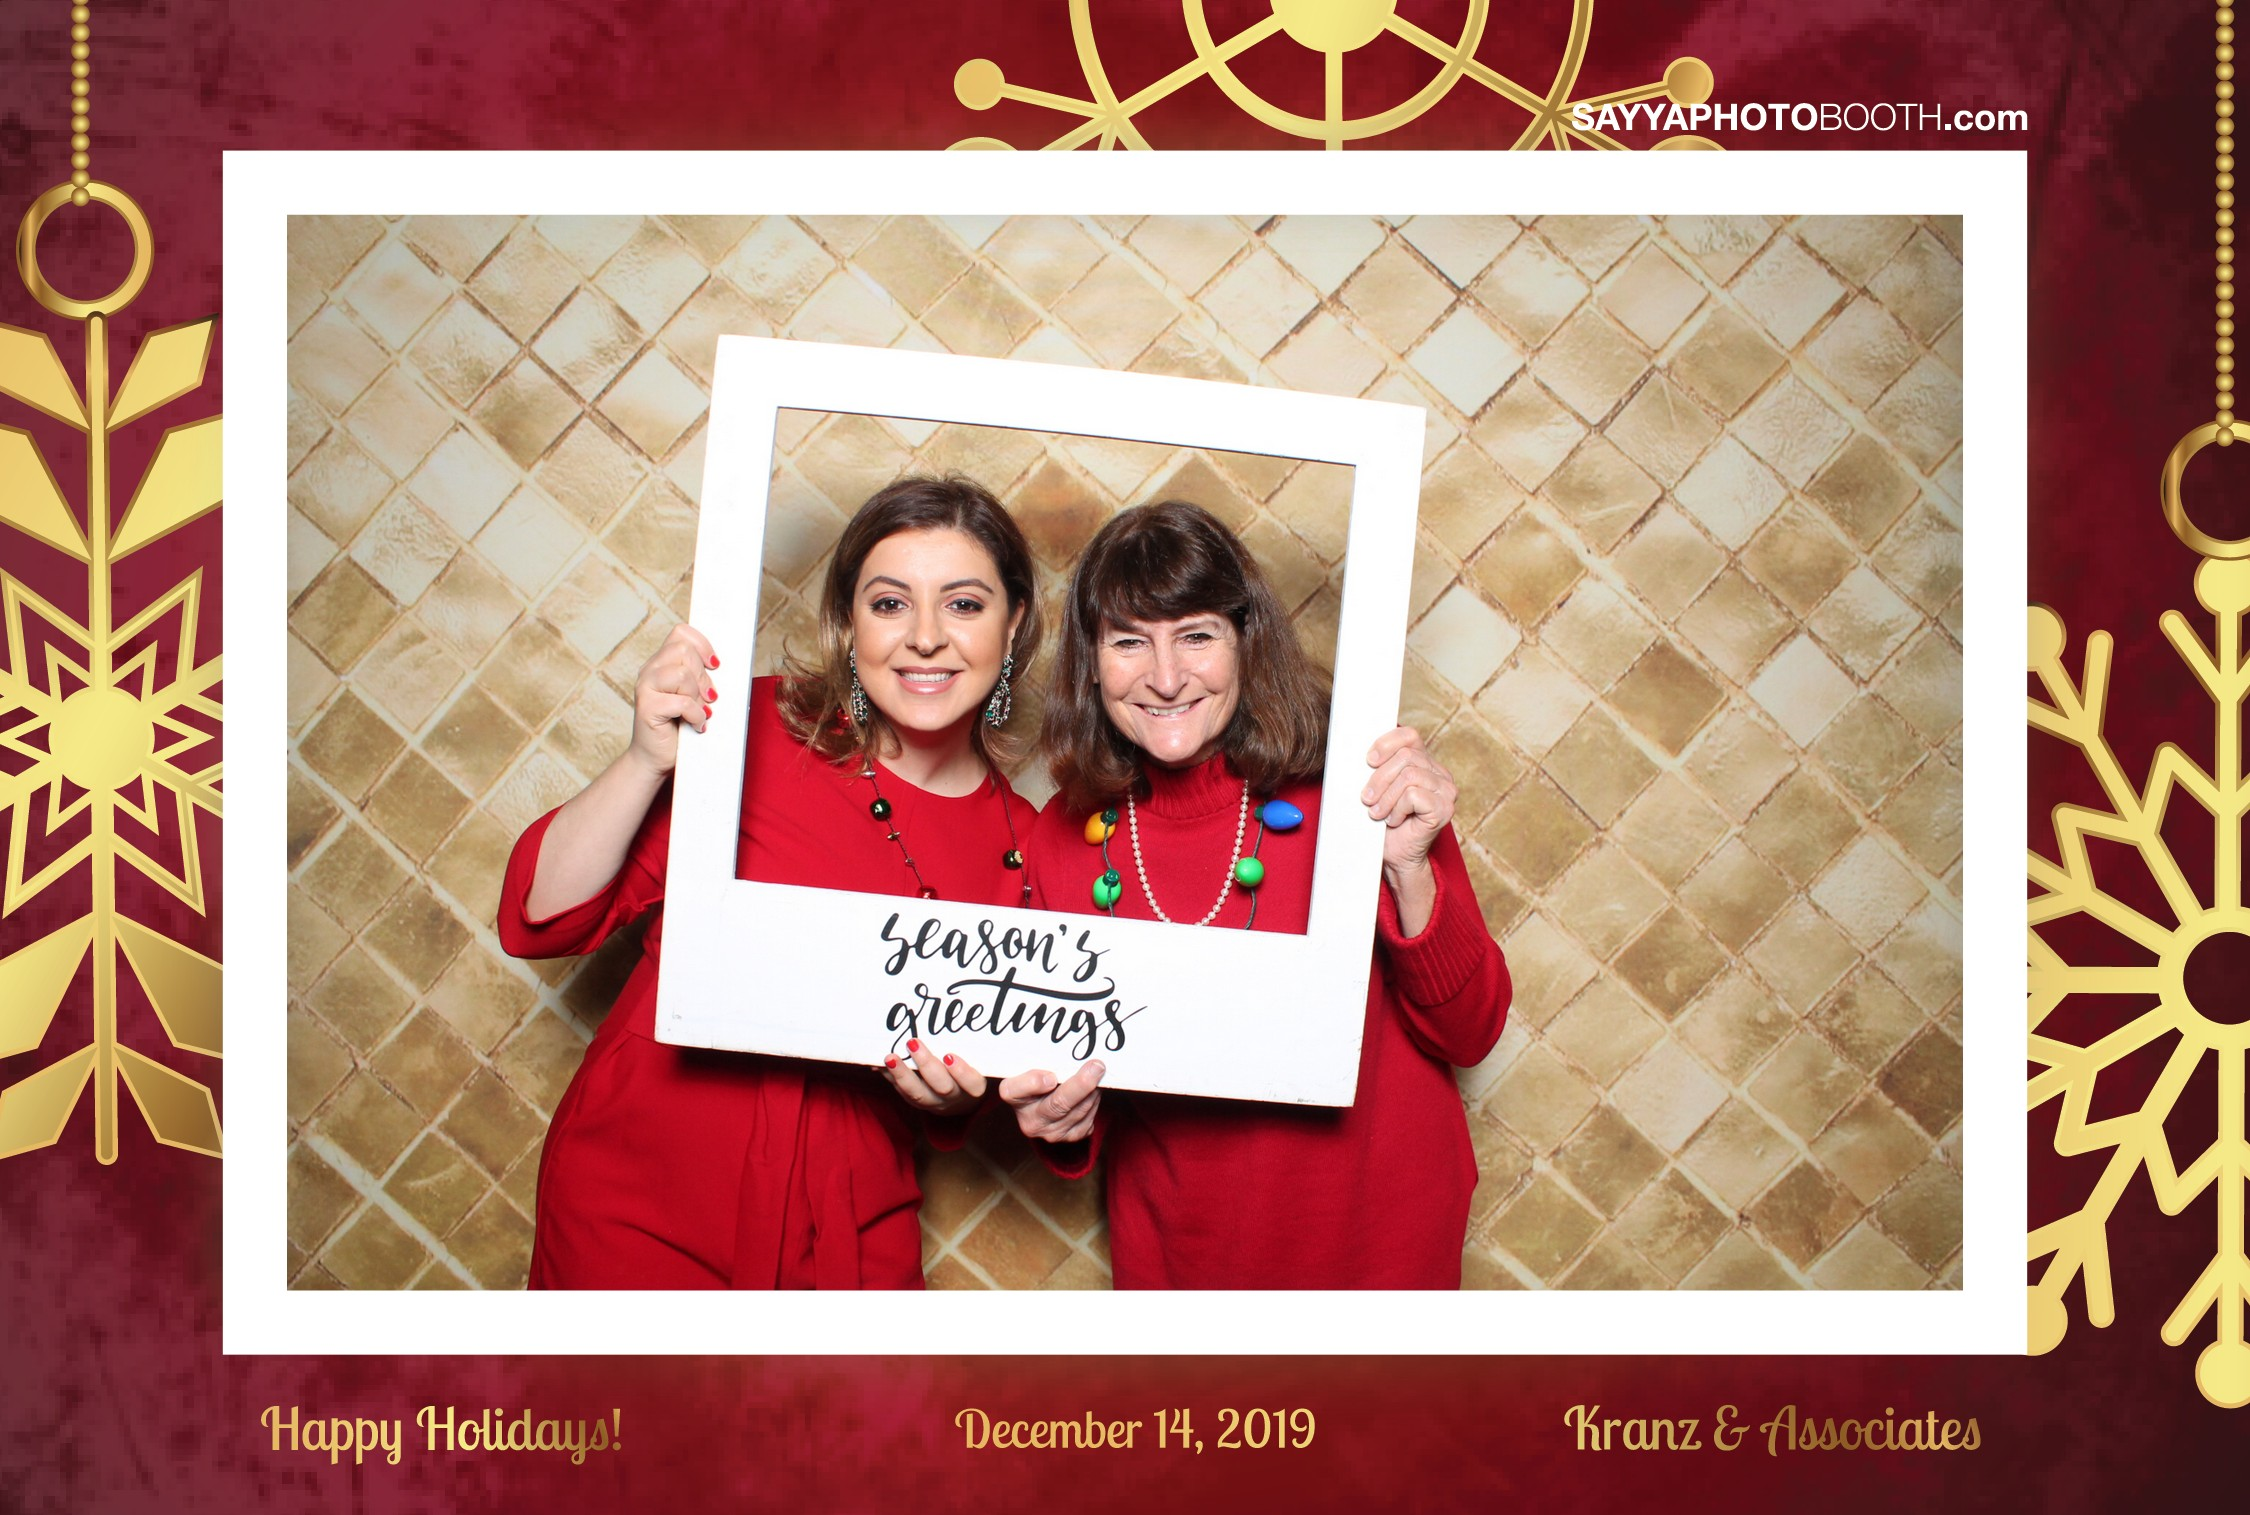 Kranz & Associates Holiday Party